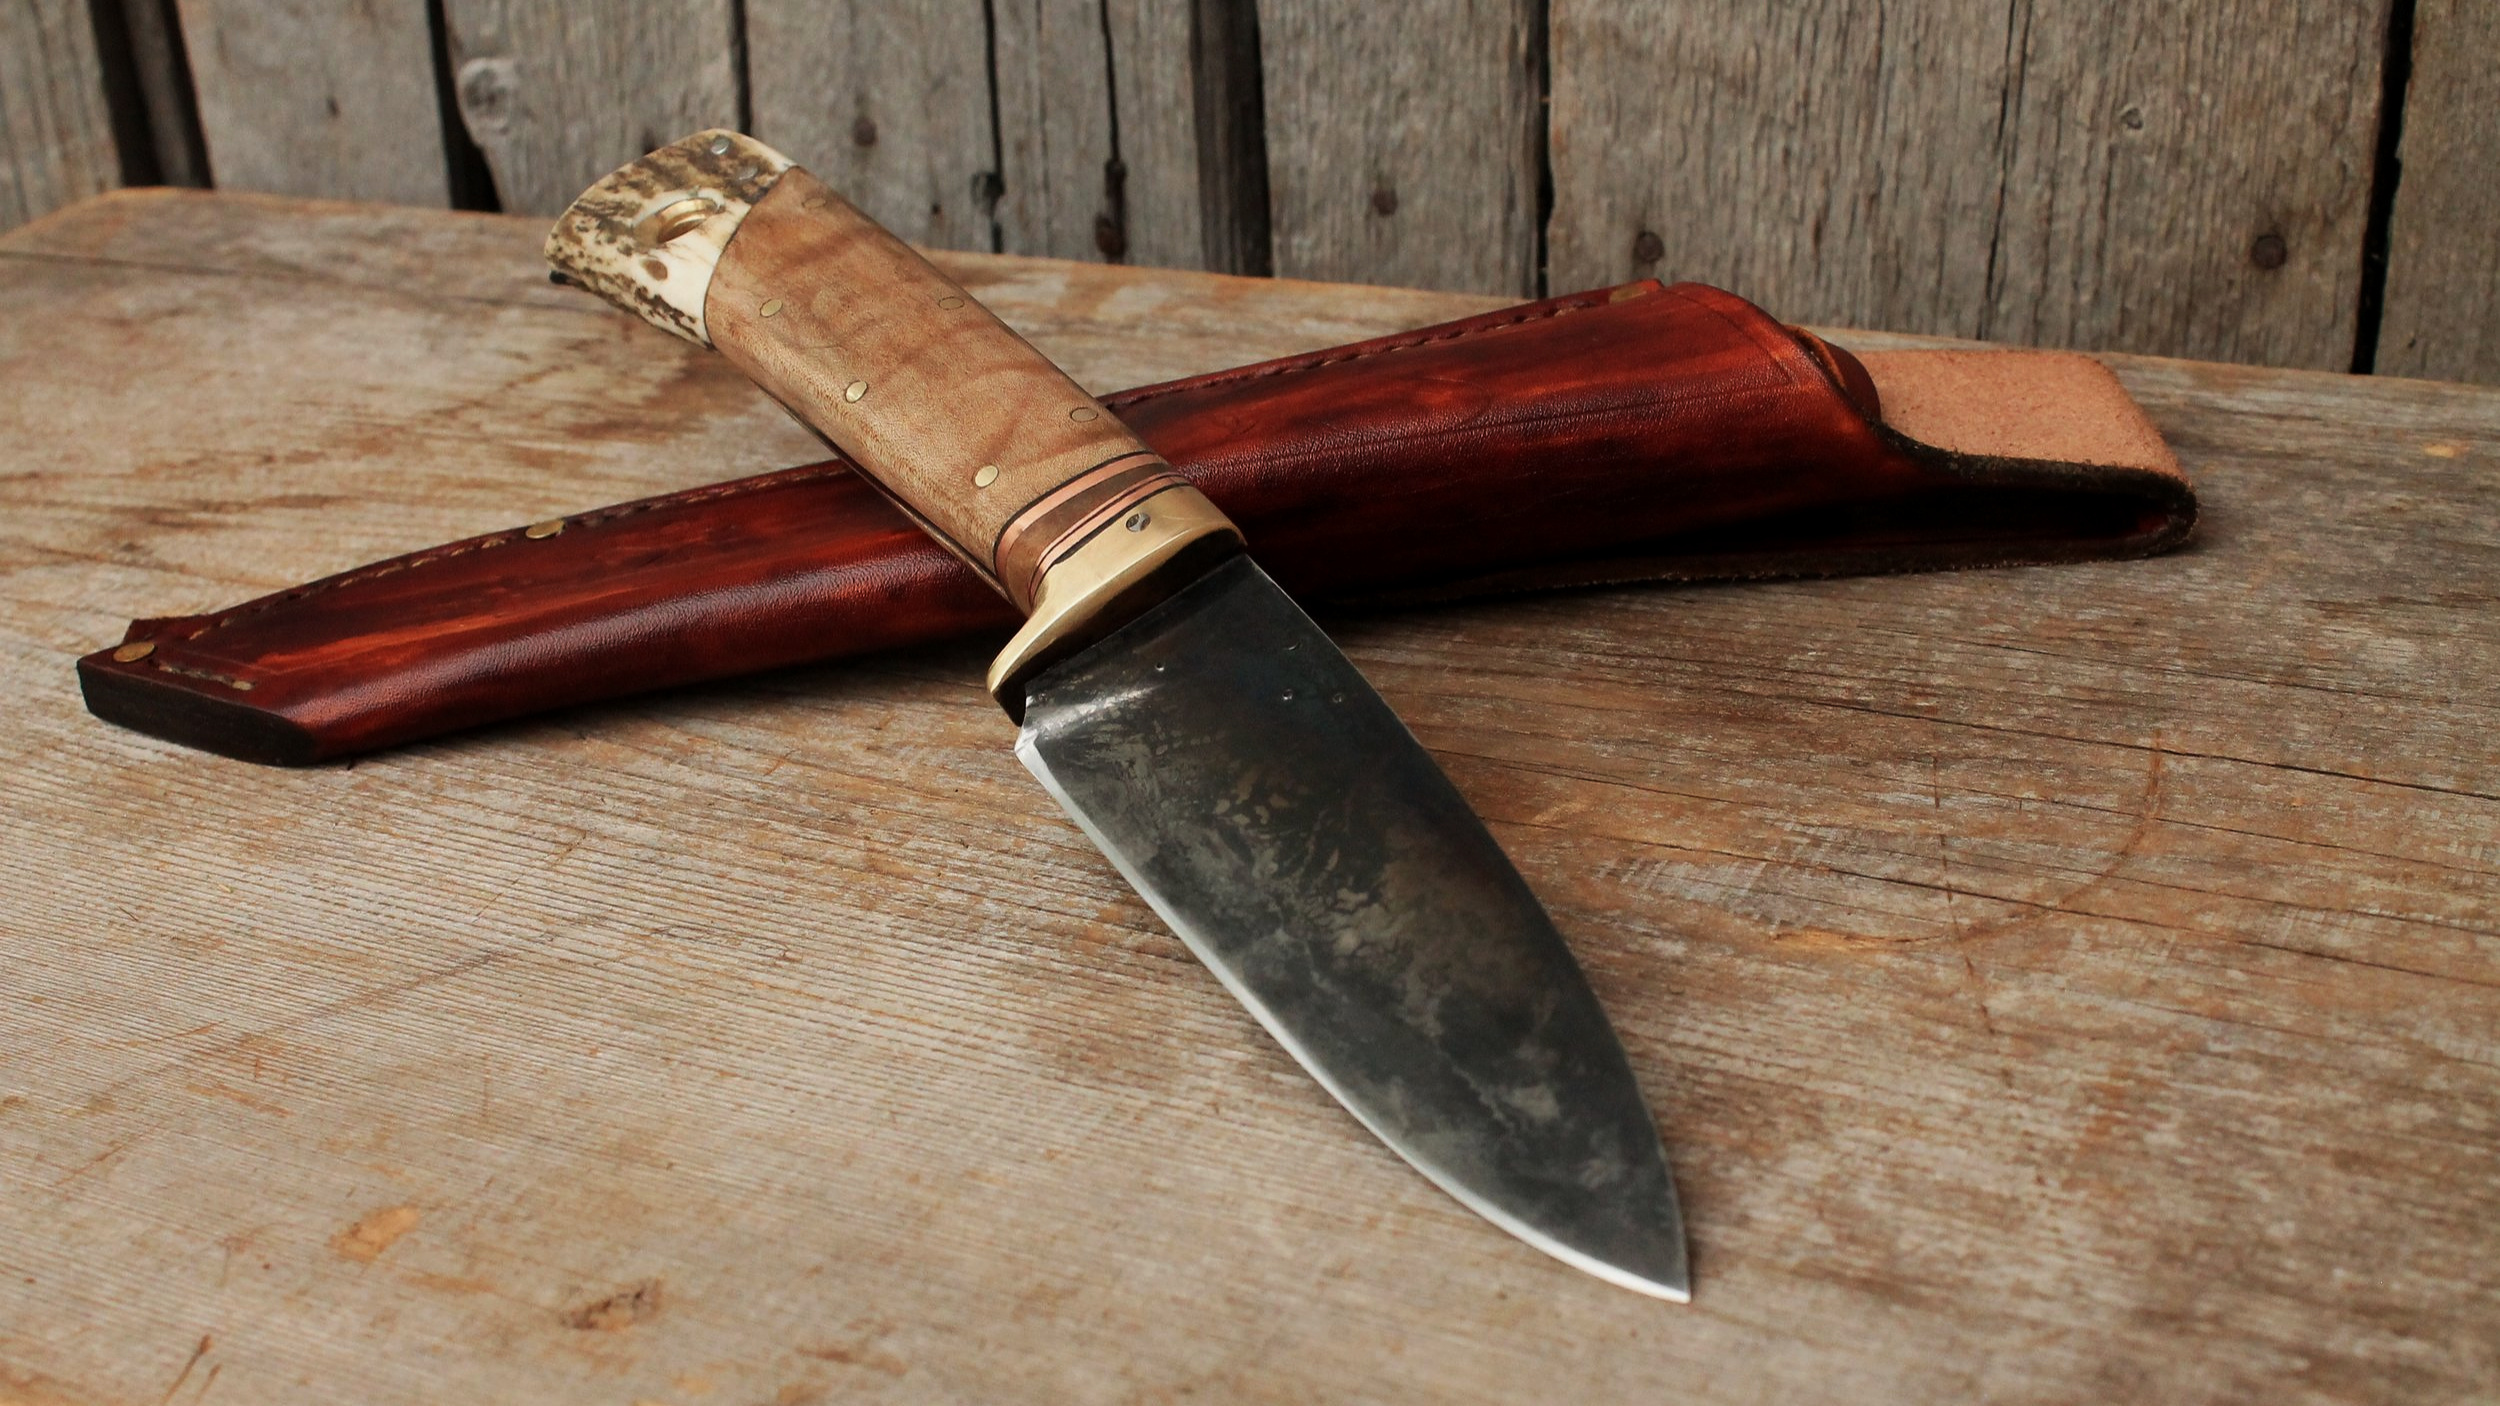 Custom hand forged hunting knife. Long handle, thick spine, high carbon lumber mill saw blade steel. A tough, strong handmade knife.